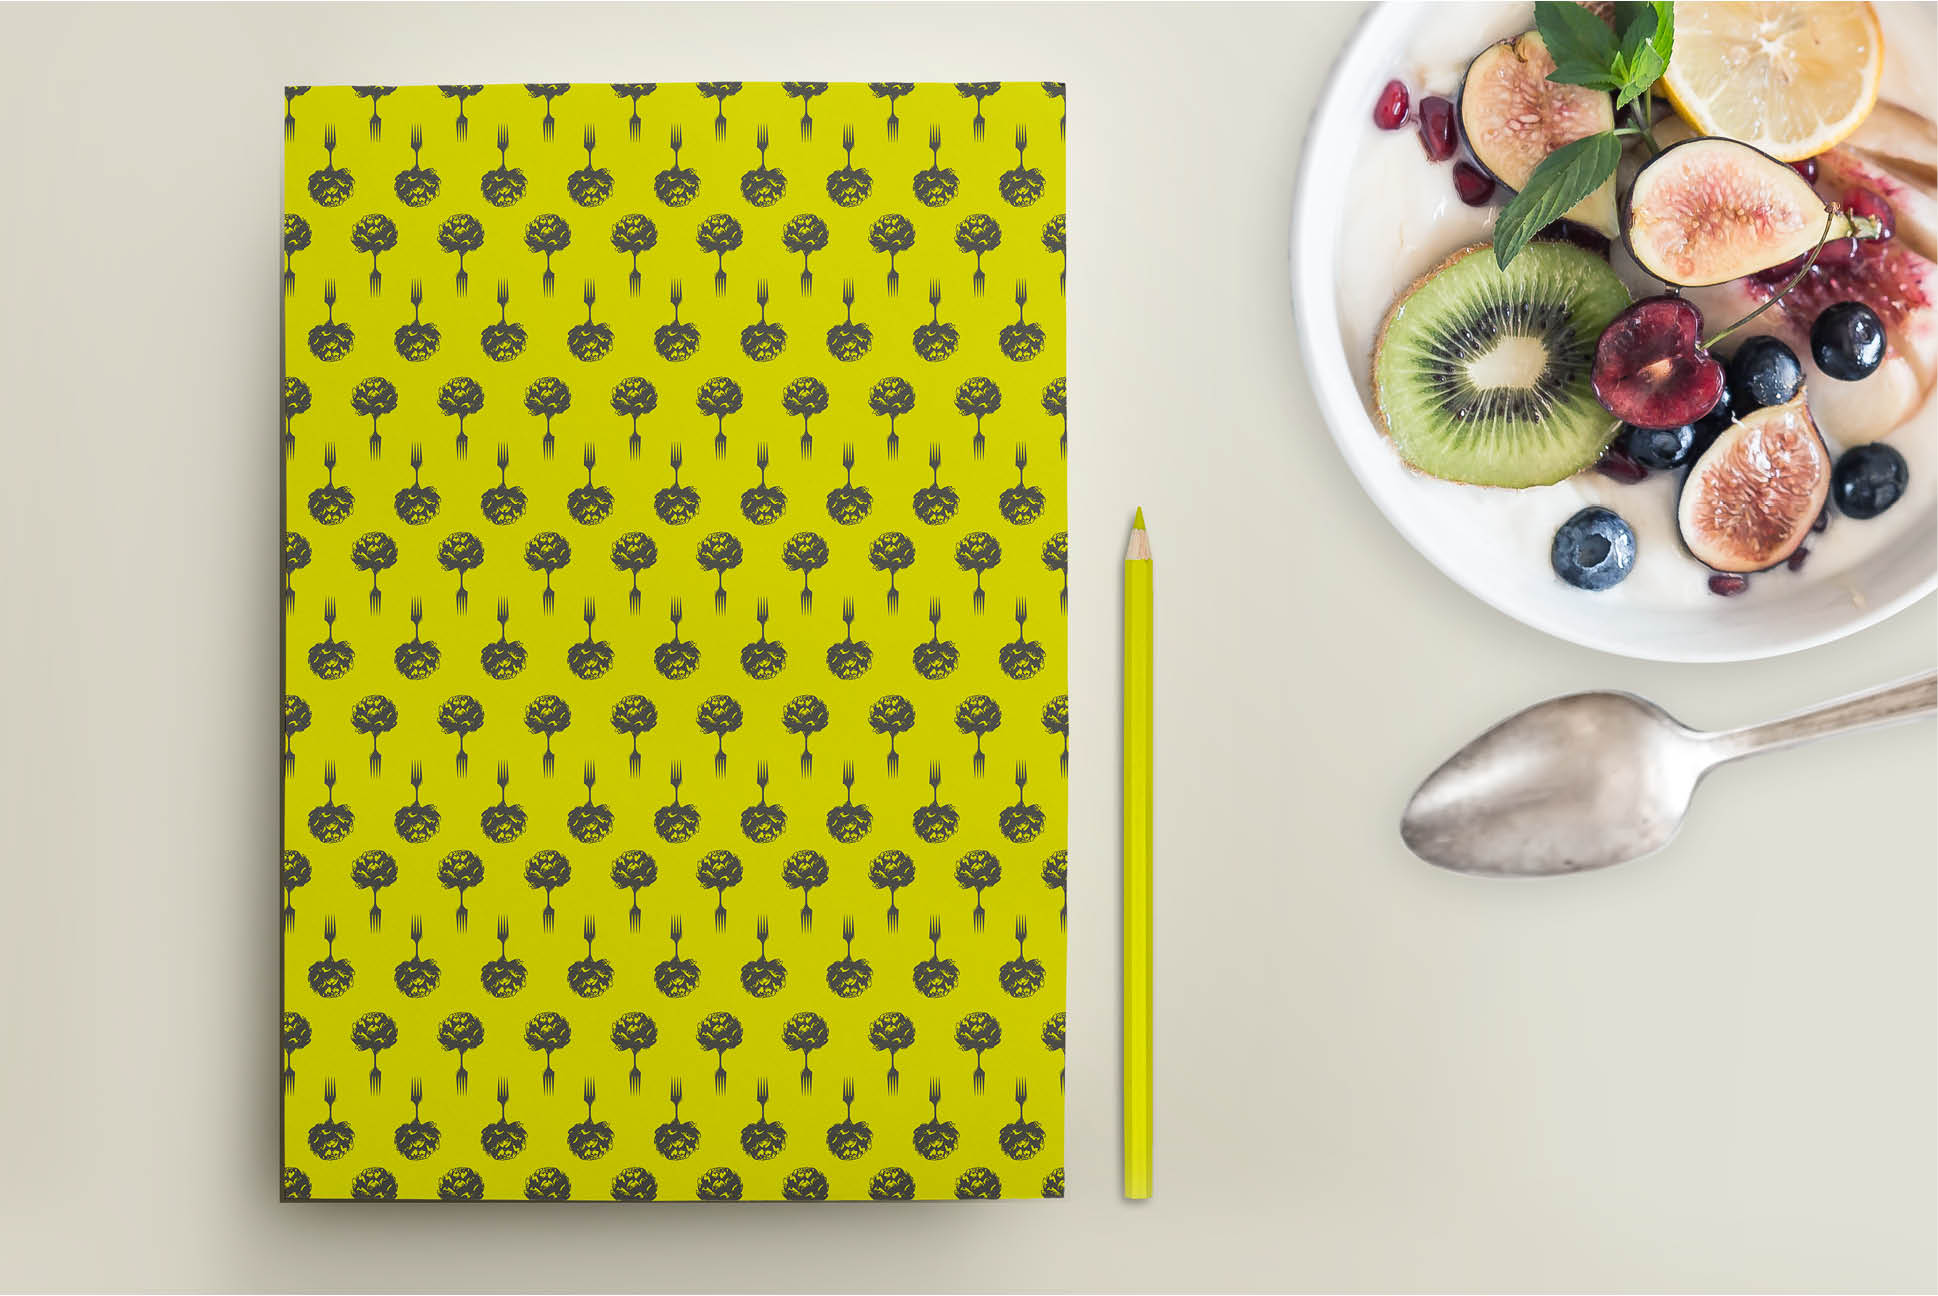 Lily Soutter Stationery | Branding | Independent Marketing | IM London - London Branding Agency